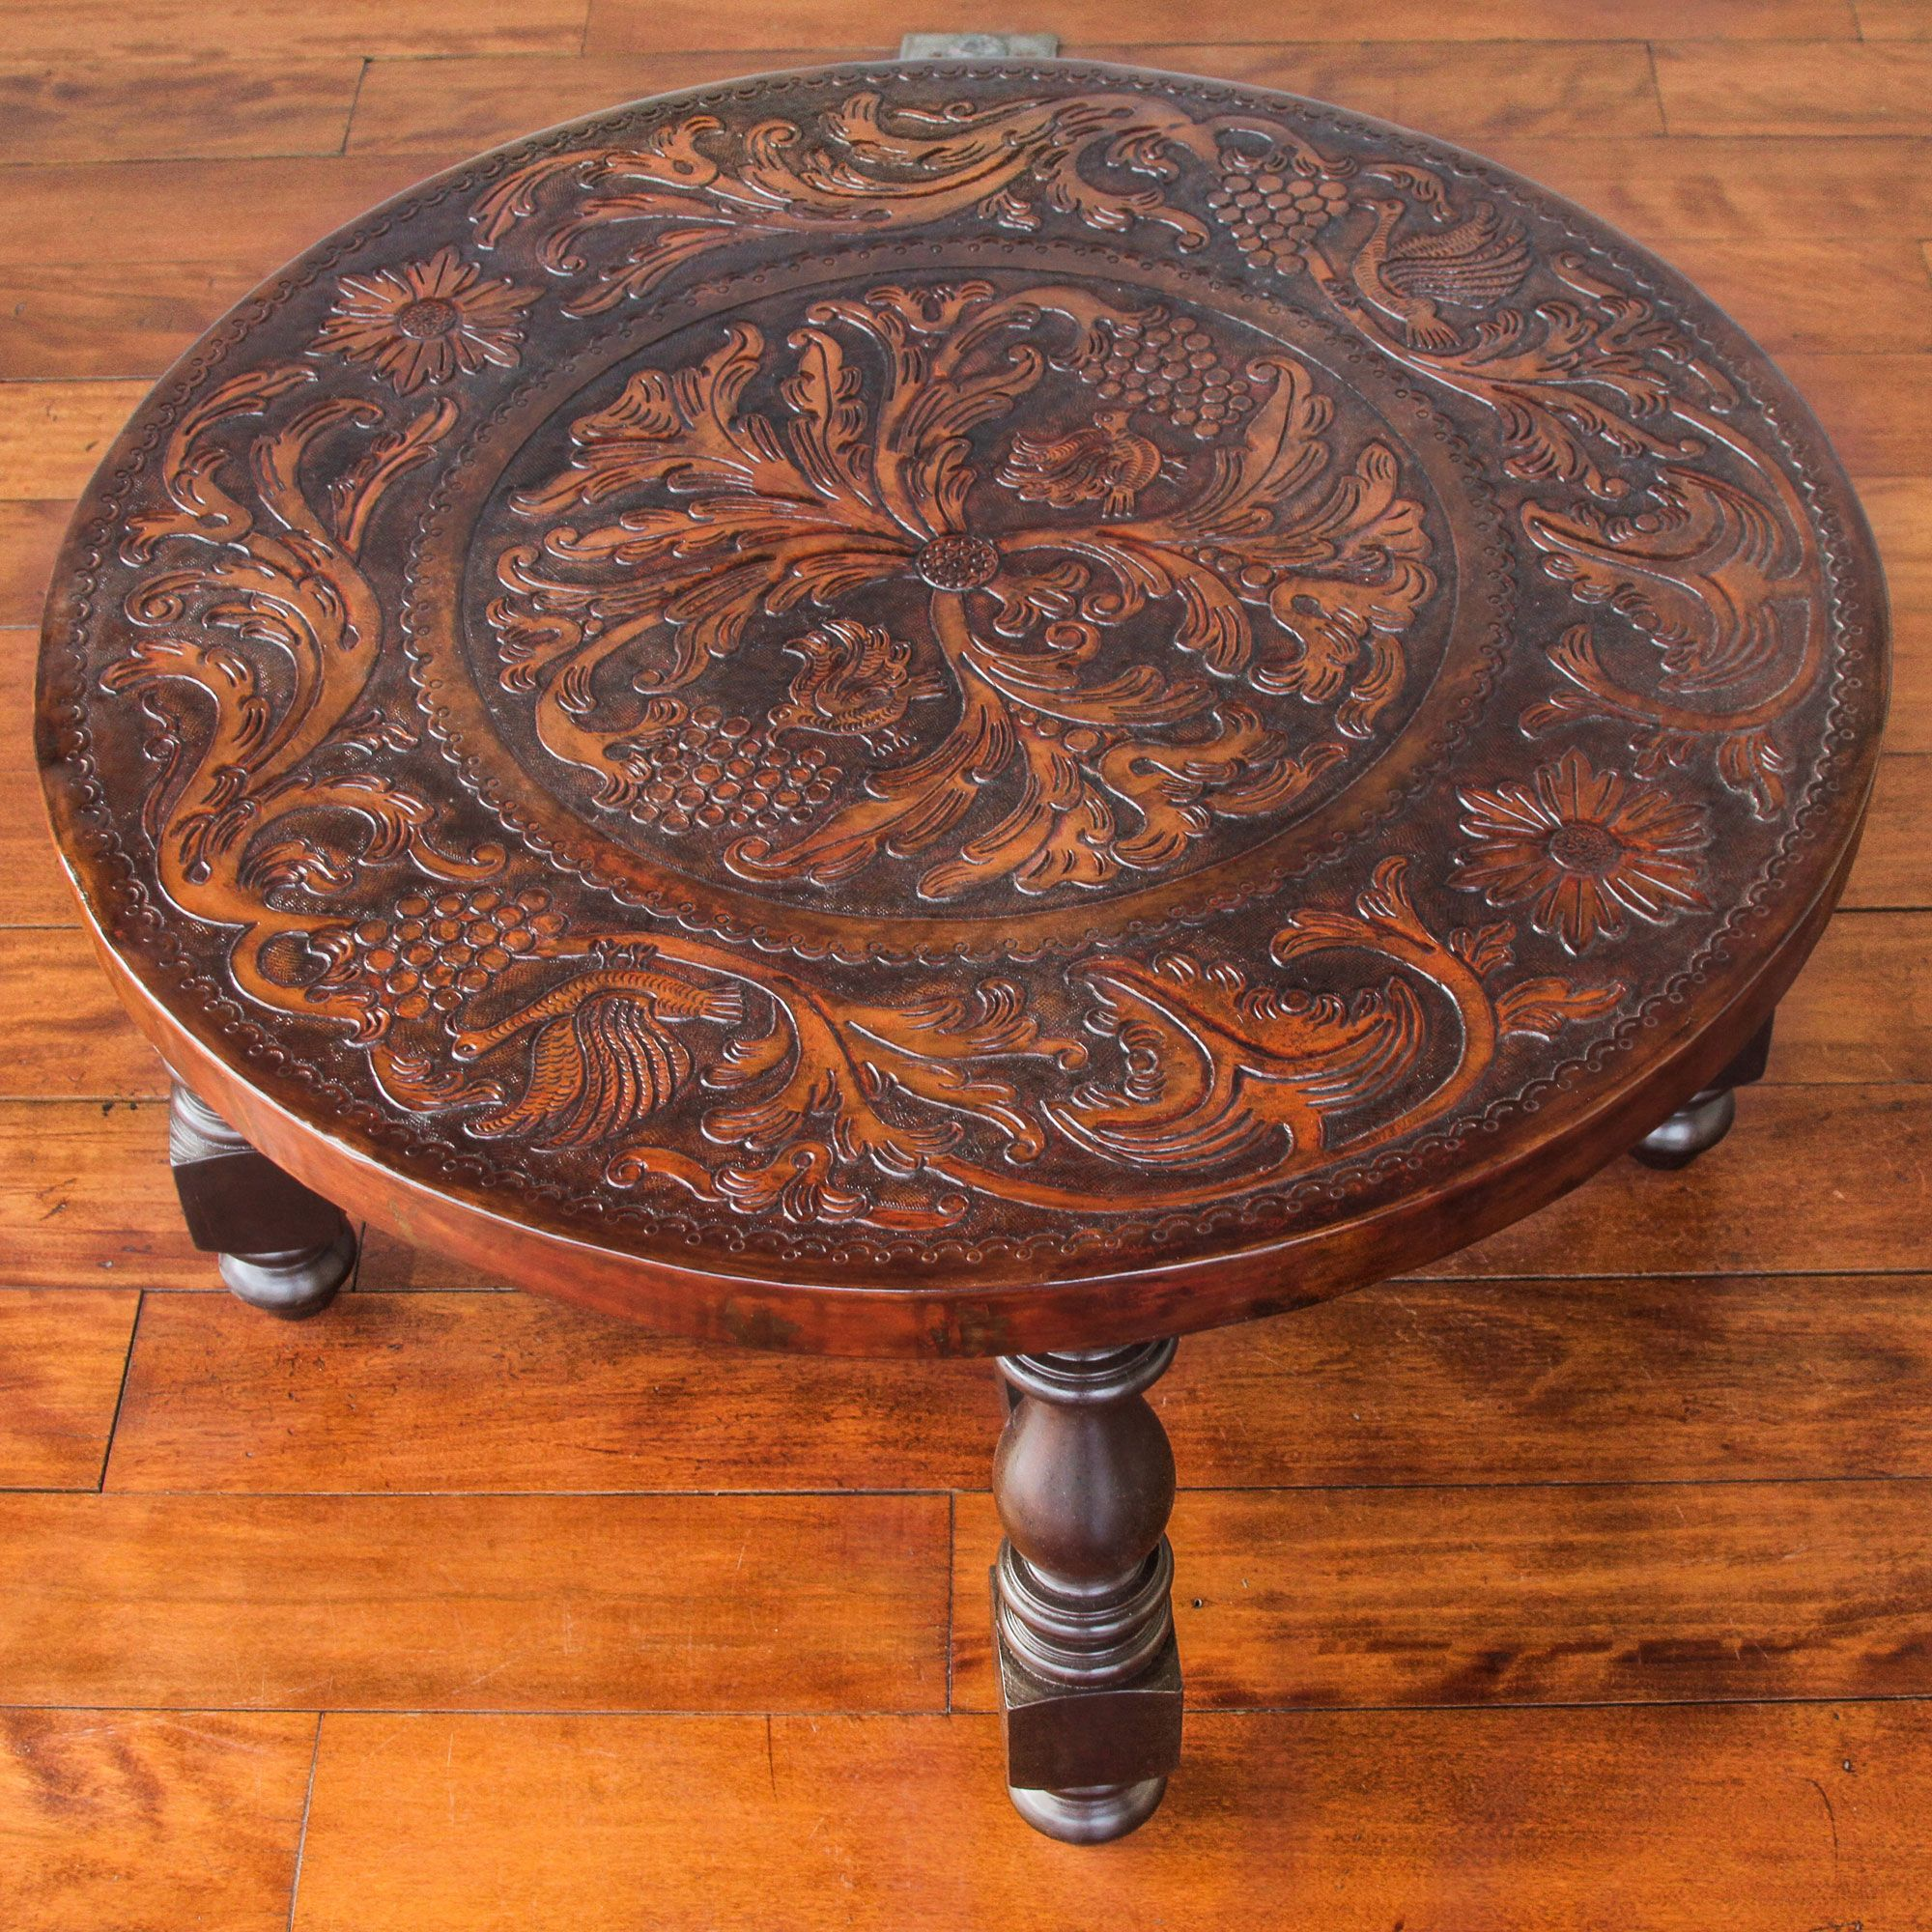 Tooled leather round wood coffee table 31 inch diameter vineyard tooled leather round wood coffee table 31 inch diameter vineyard birds novica geotapseo Image collections